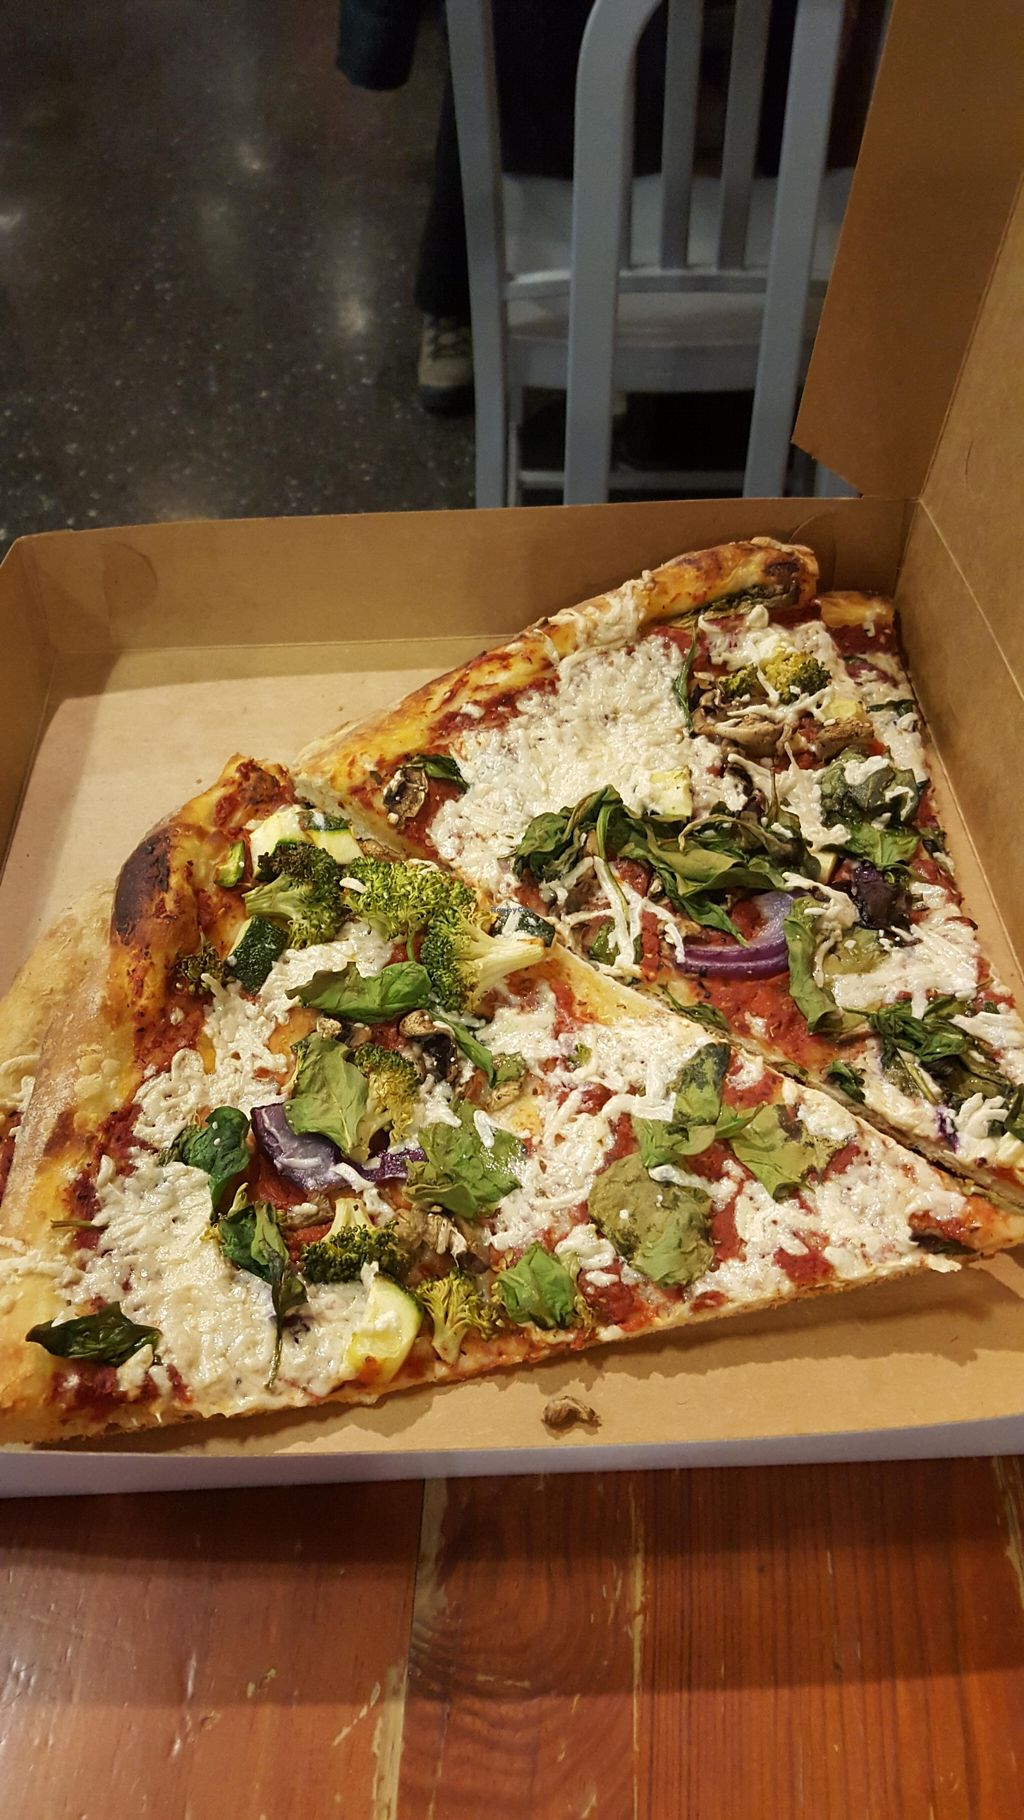 "Photo of Washington Deli  by <a href=""/members/profile/Dcvegjess"">Dcvegjess</a> <br/>Vegan pizza by the slice, available every day. I've never seen that outside Whole Foods.  <br/> February 8, 2016  - <a href='/contact/abuse/image/69401/135463'>Report</a>"